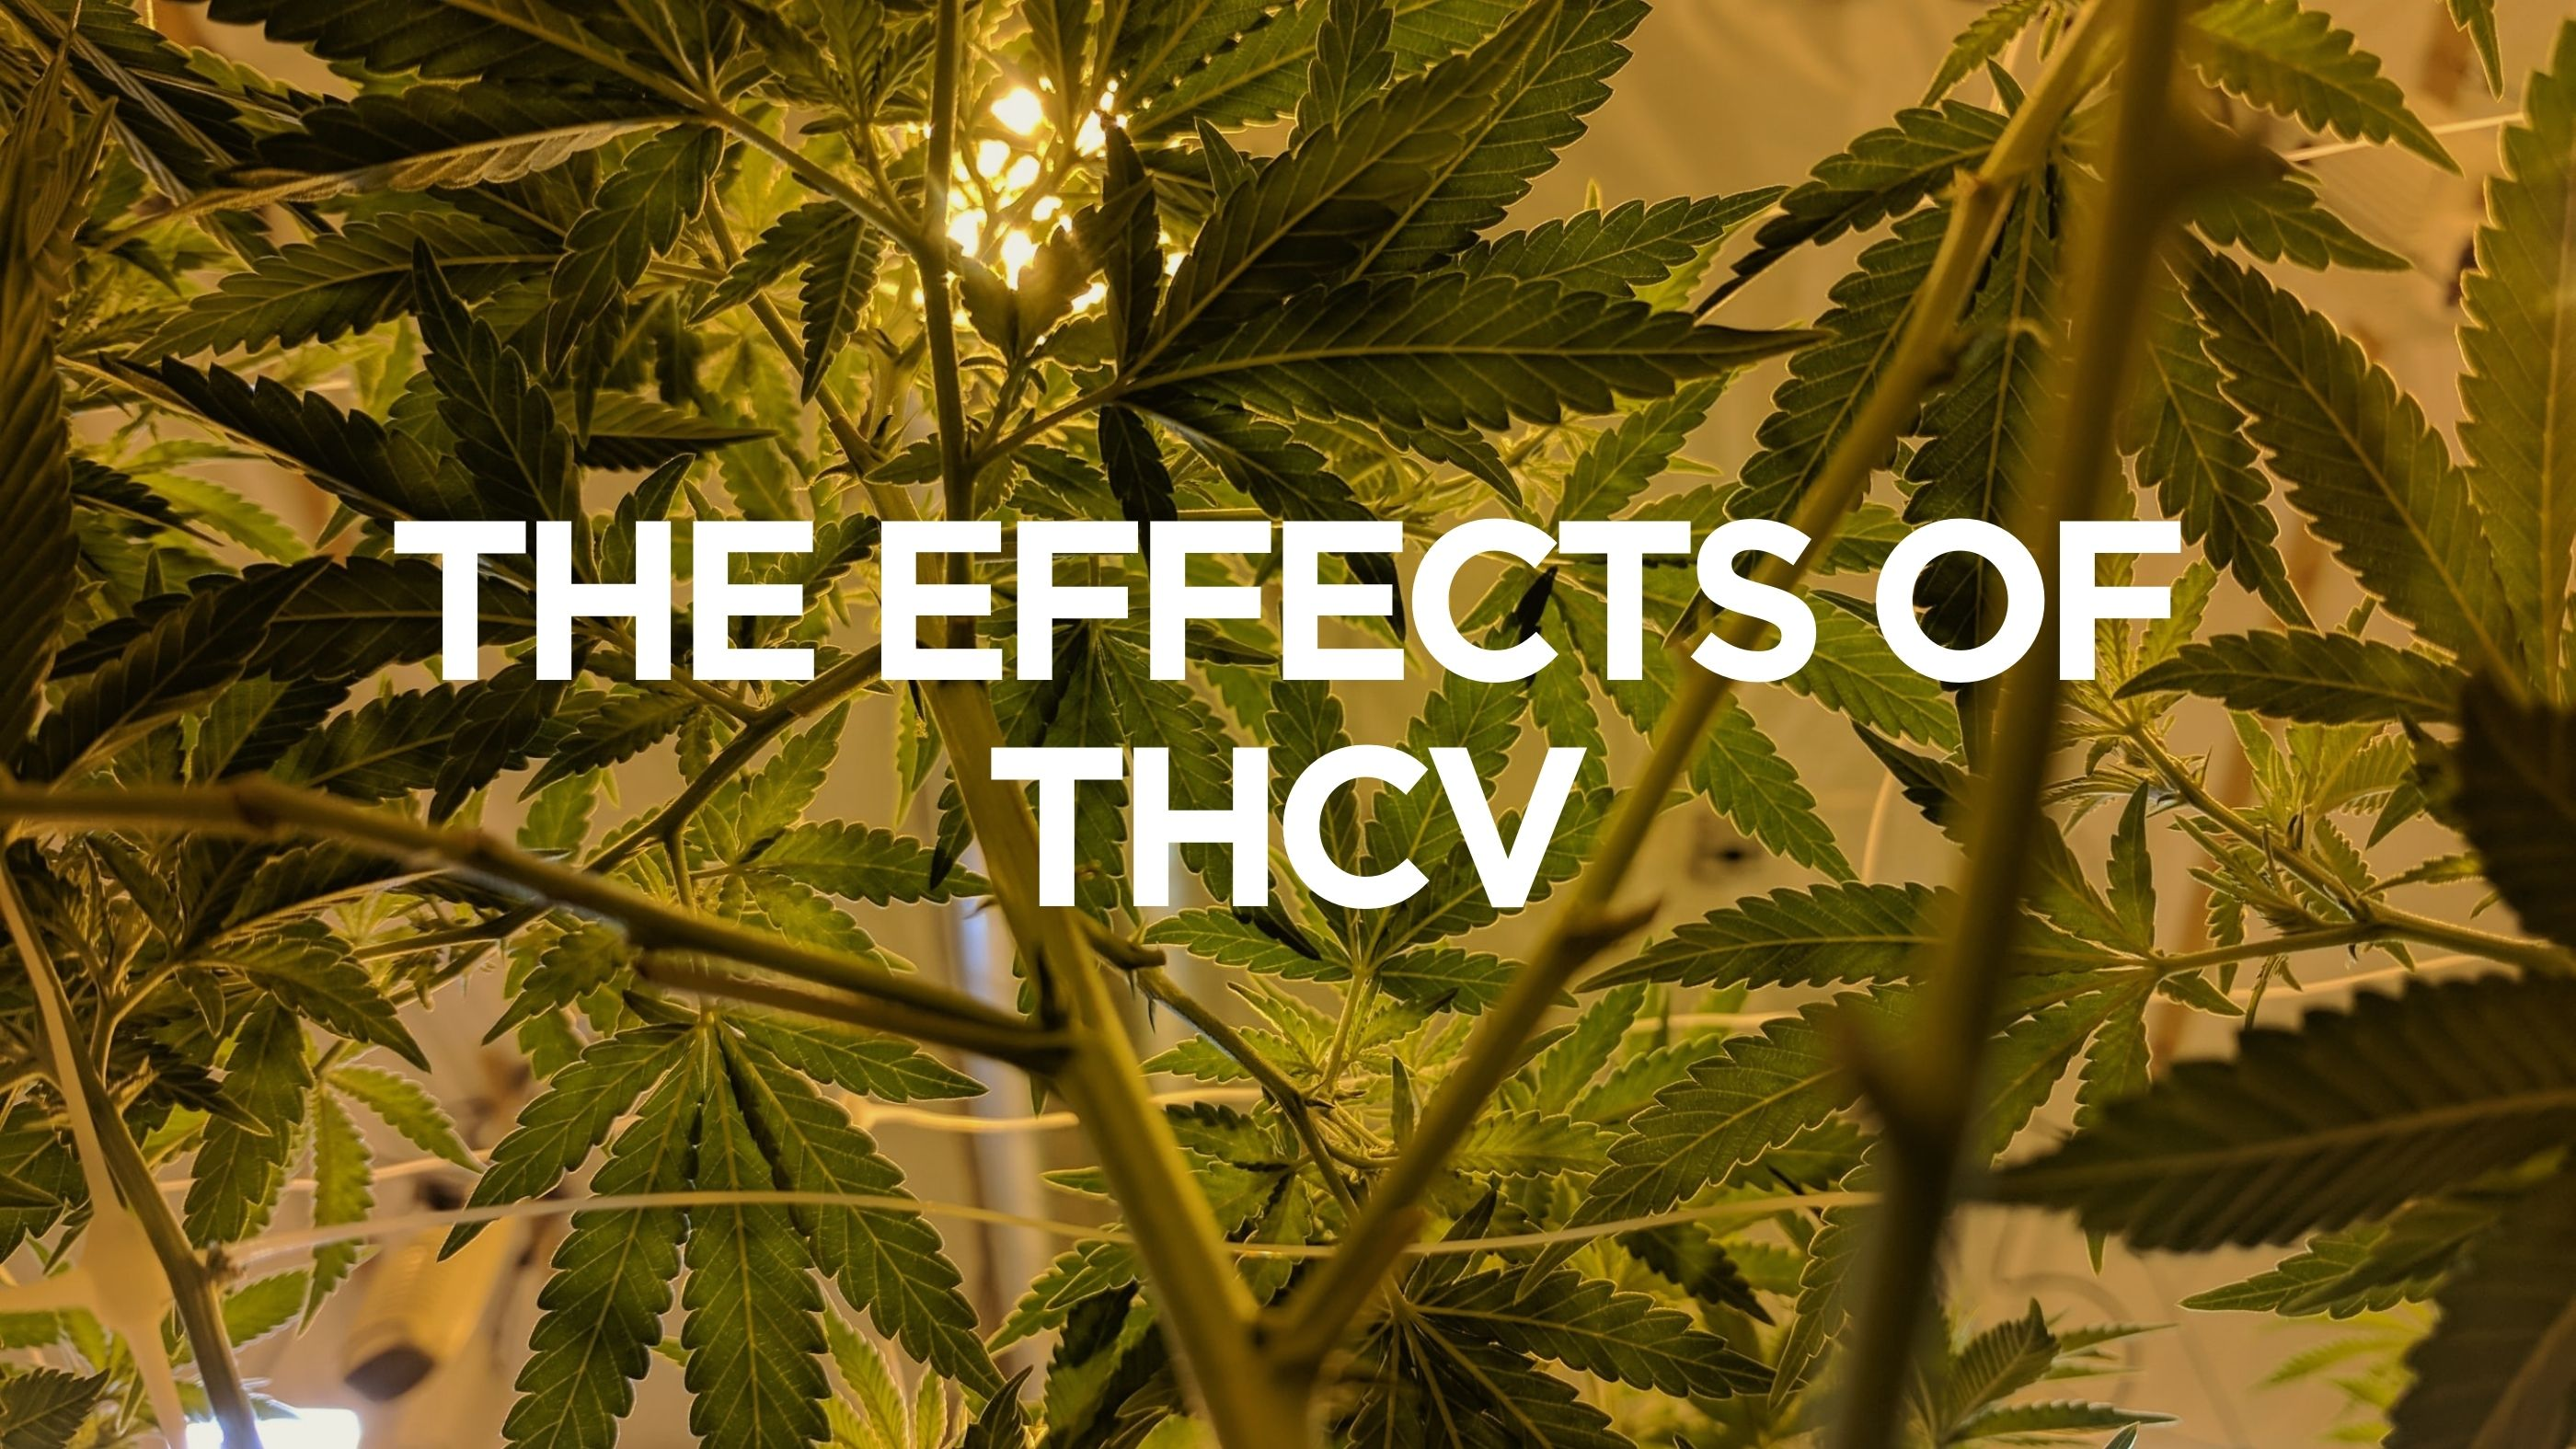 The Effects of THCV